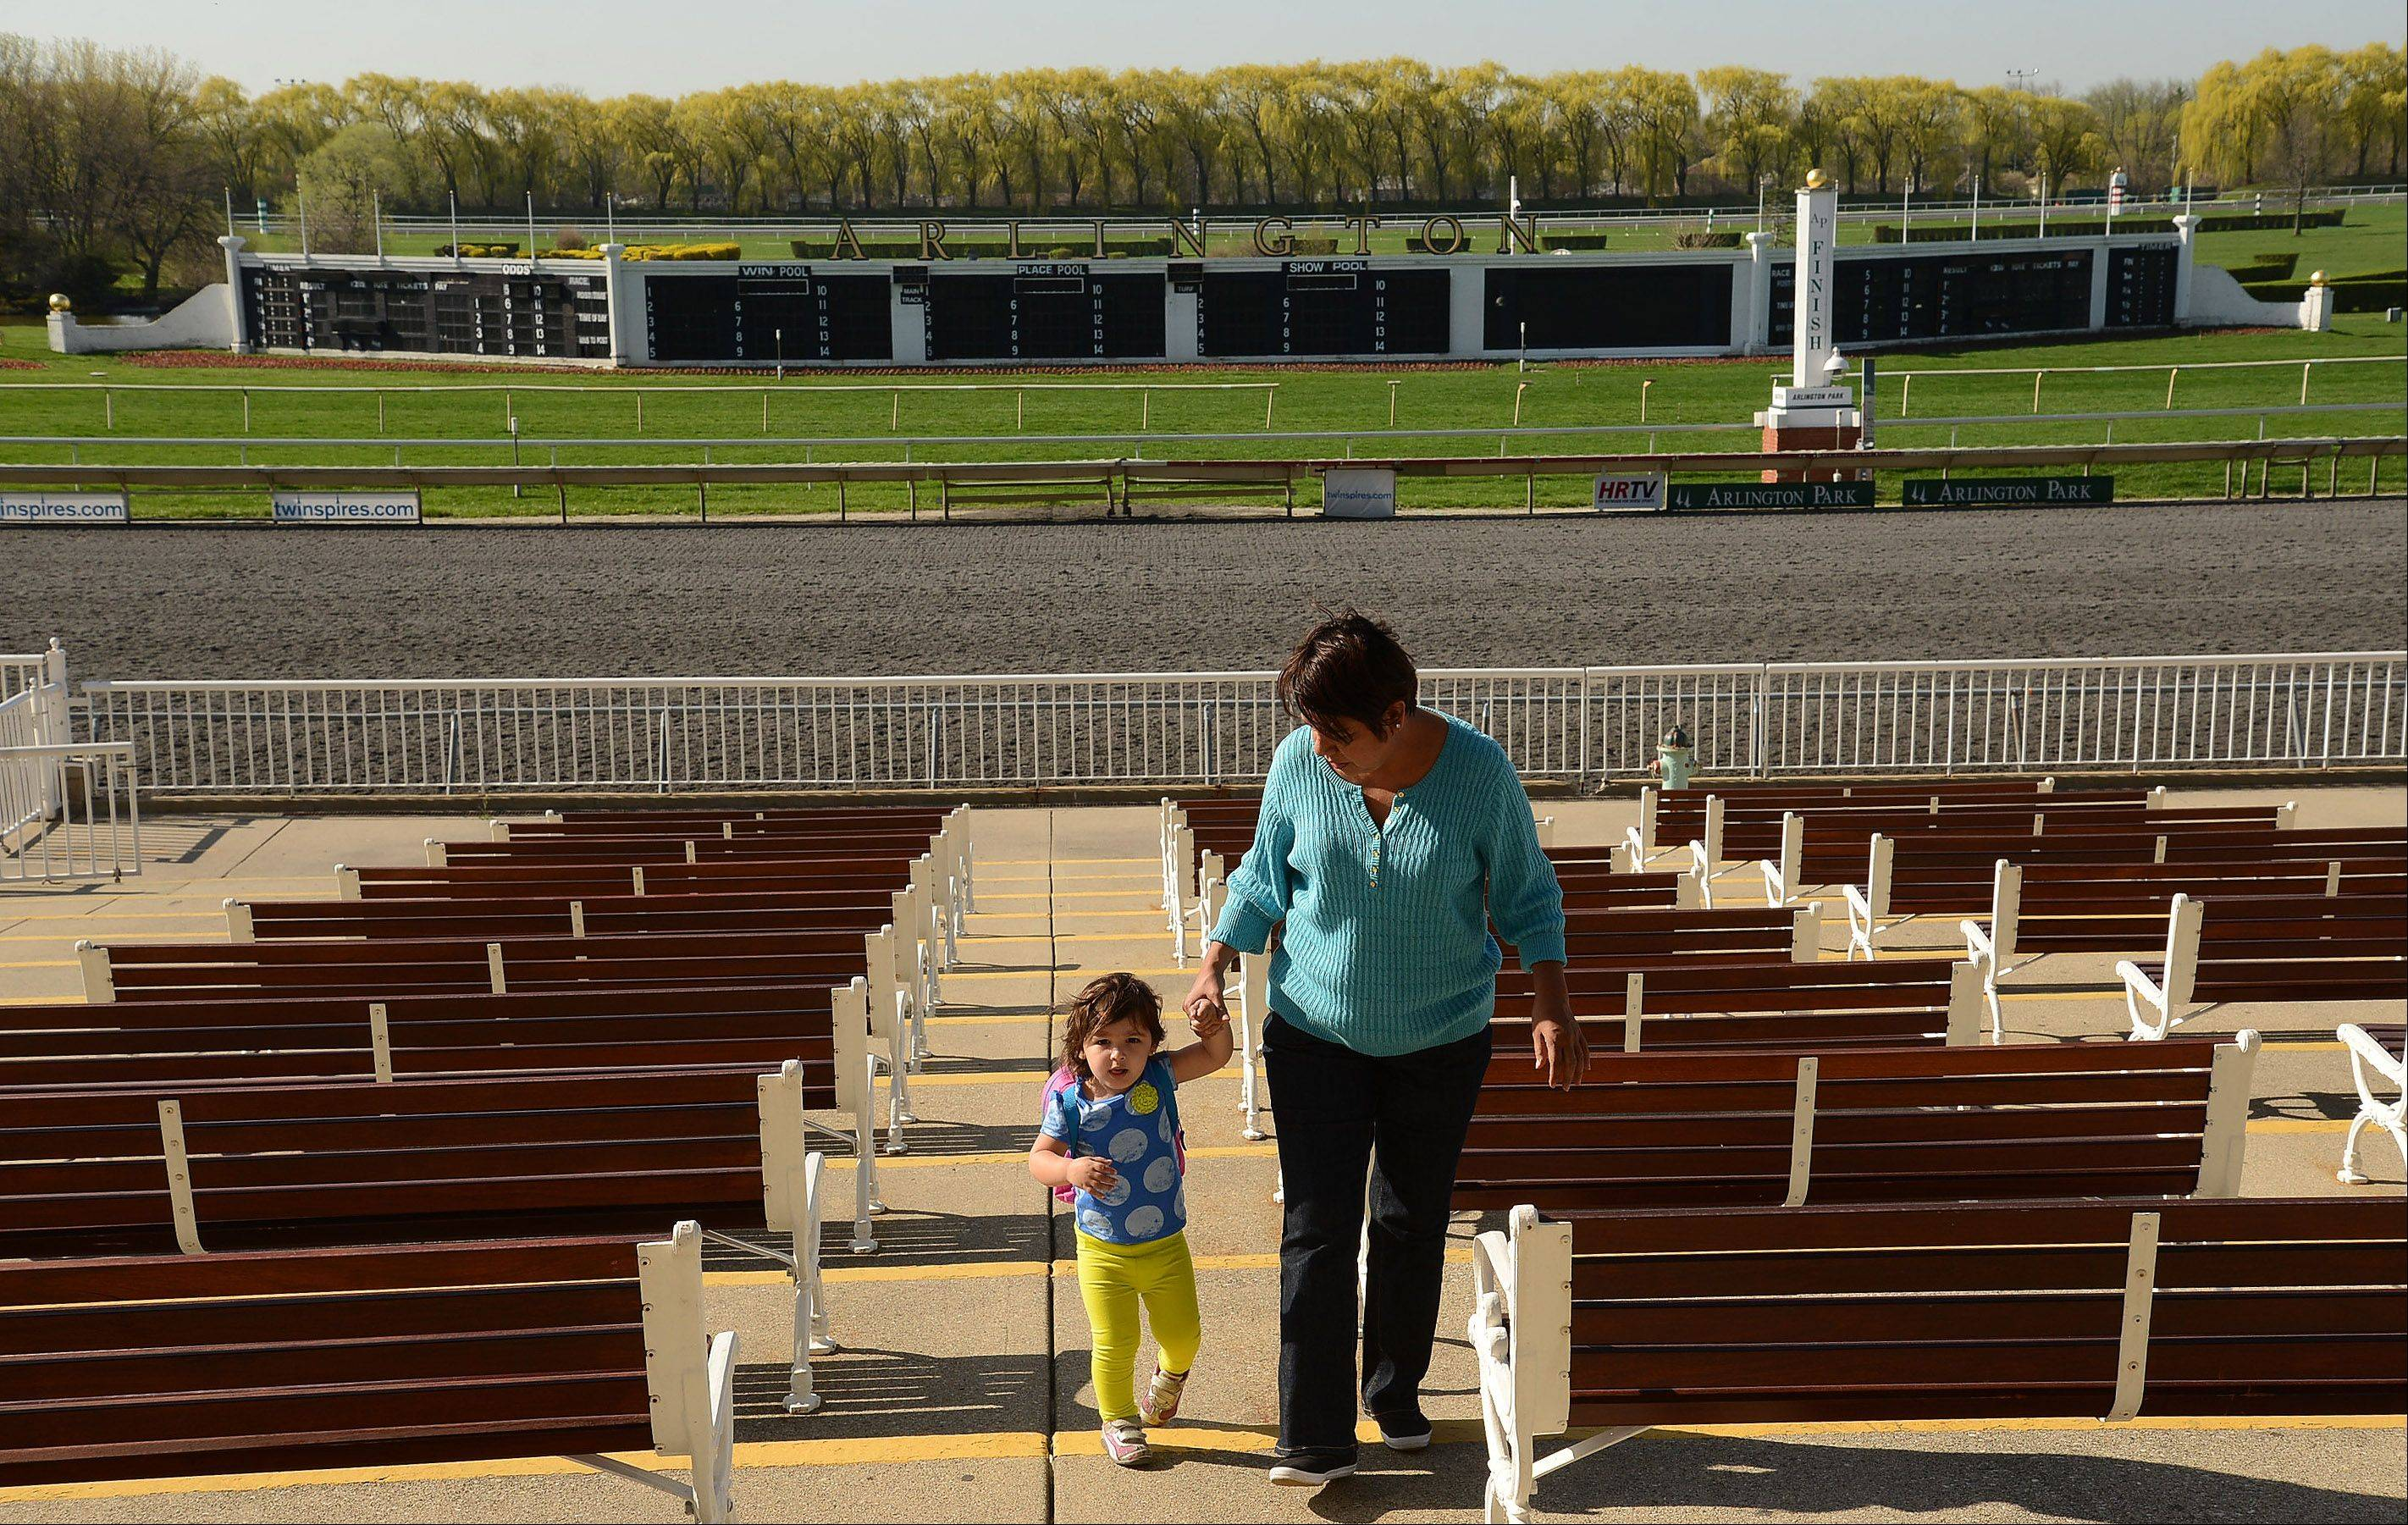 Aide Silva, wife of trainer Carlos Silva, walks with her granddaughter through the grandstand watching horses work out in preparation for opening day at Arlington International Racecourse.